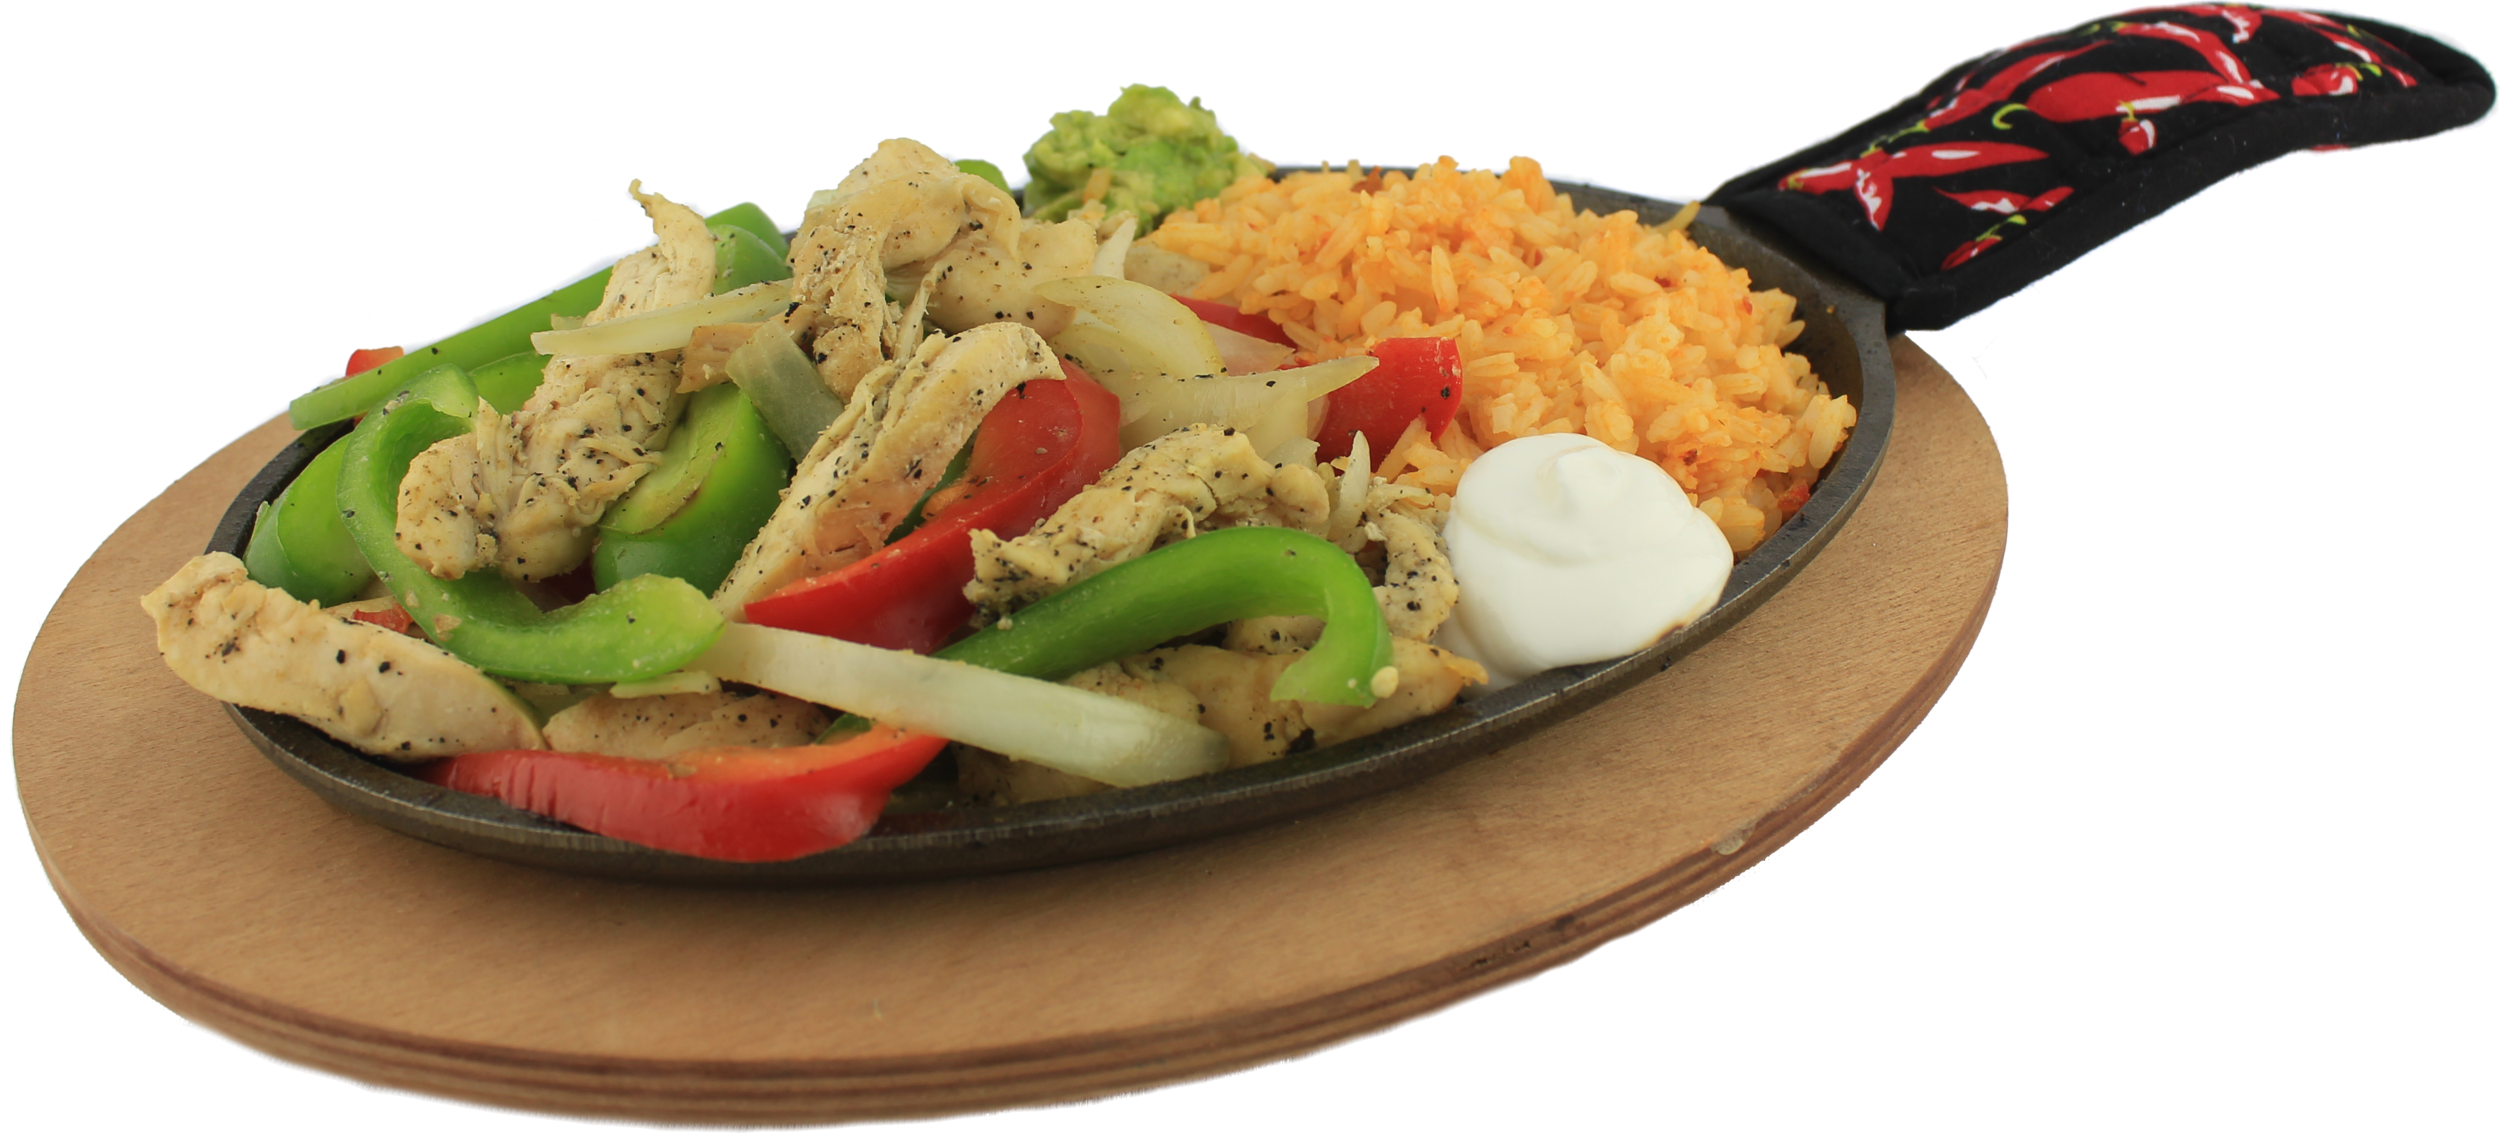 Sizzling Fajitas  Choice of chicken, steak or shrimp, with fresh fajita veggies, guacamole and sour cream. Served with a side of rice and tortillas. Chicken $16.99 - Steak $17.99  Shrimp $18.99 - Mix $19.99